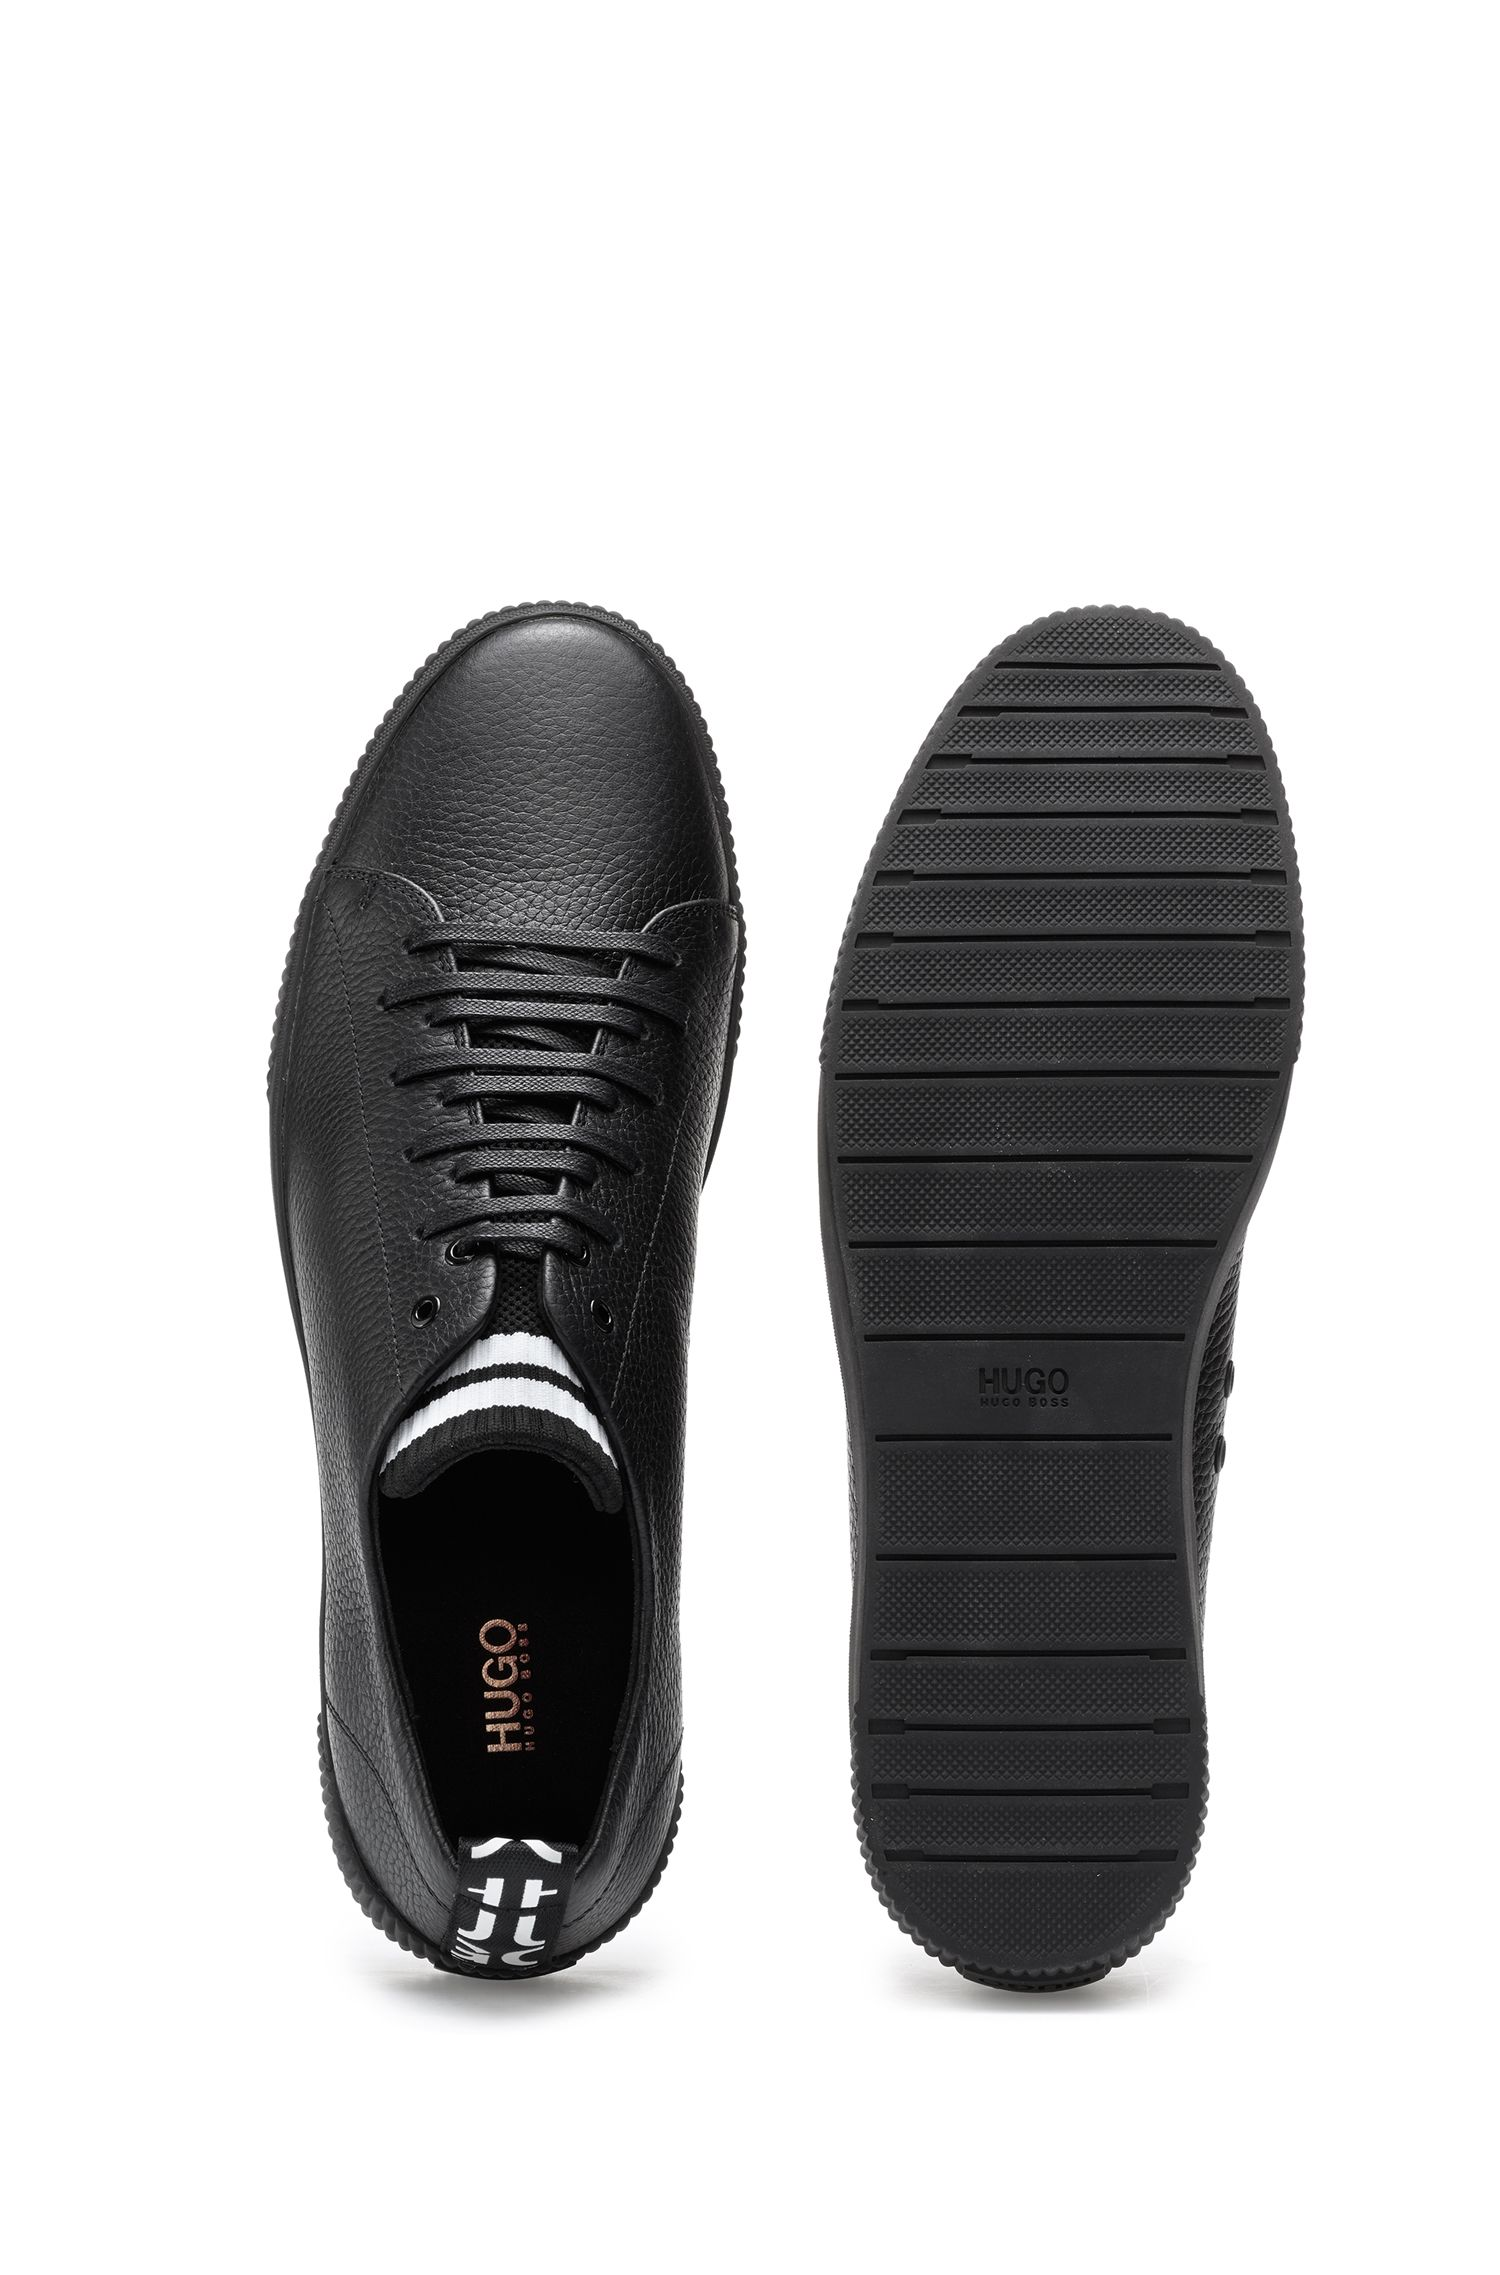 Sneakers in grained leather with original lace-up design, Black